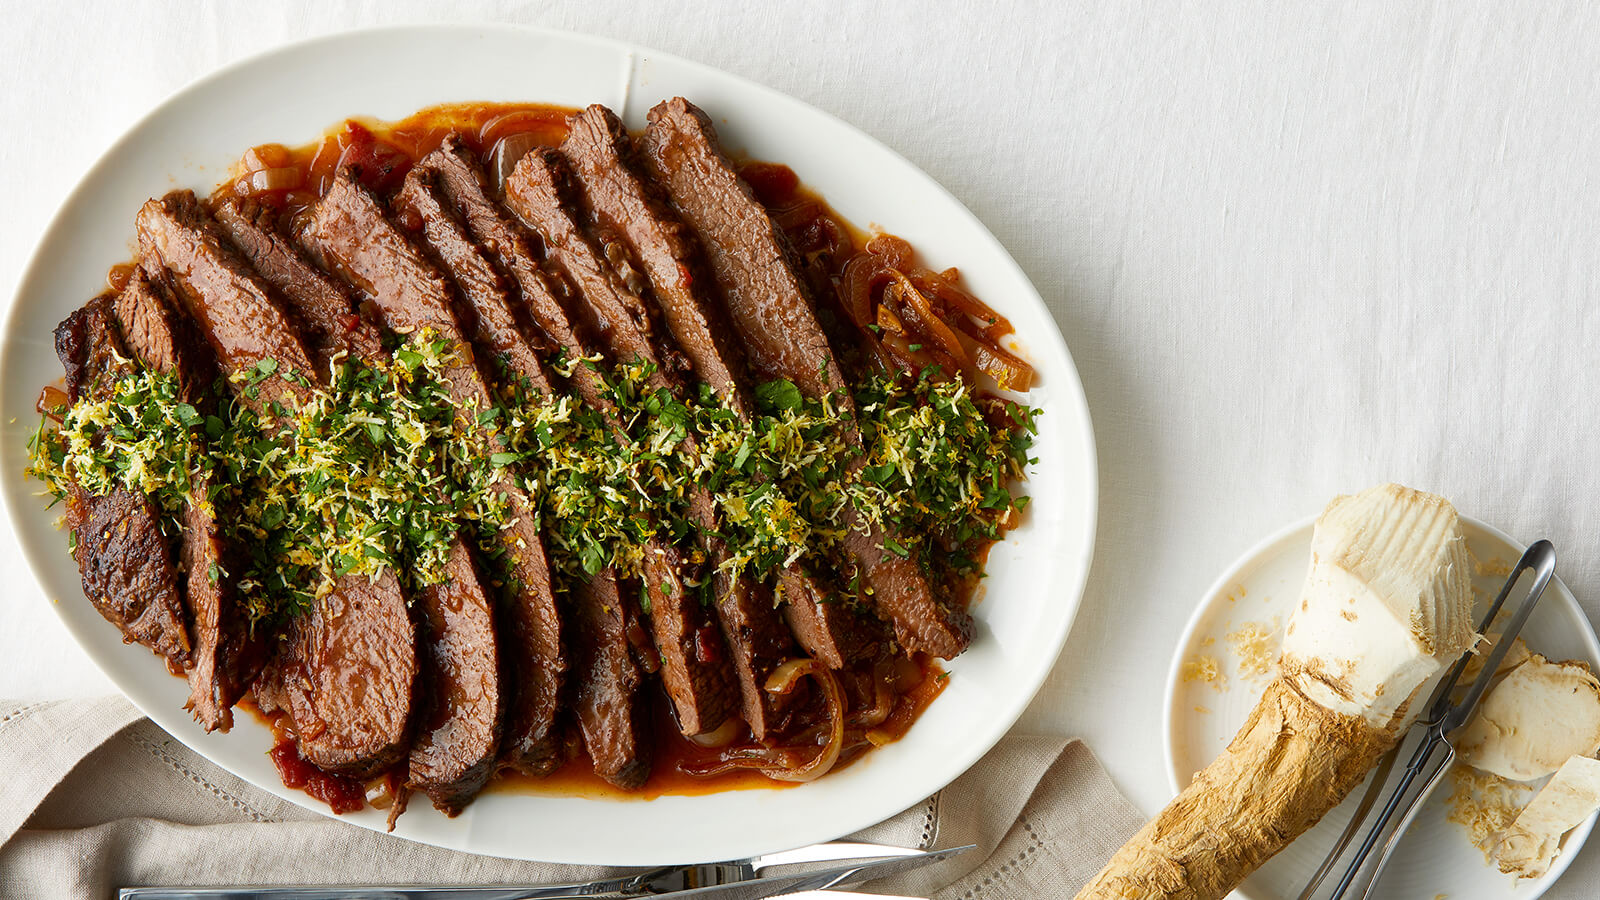 Braised Brisket with Orange Horseradish Gremolata